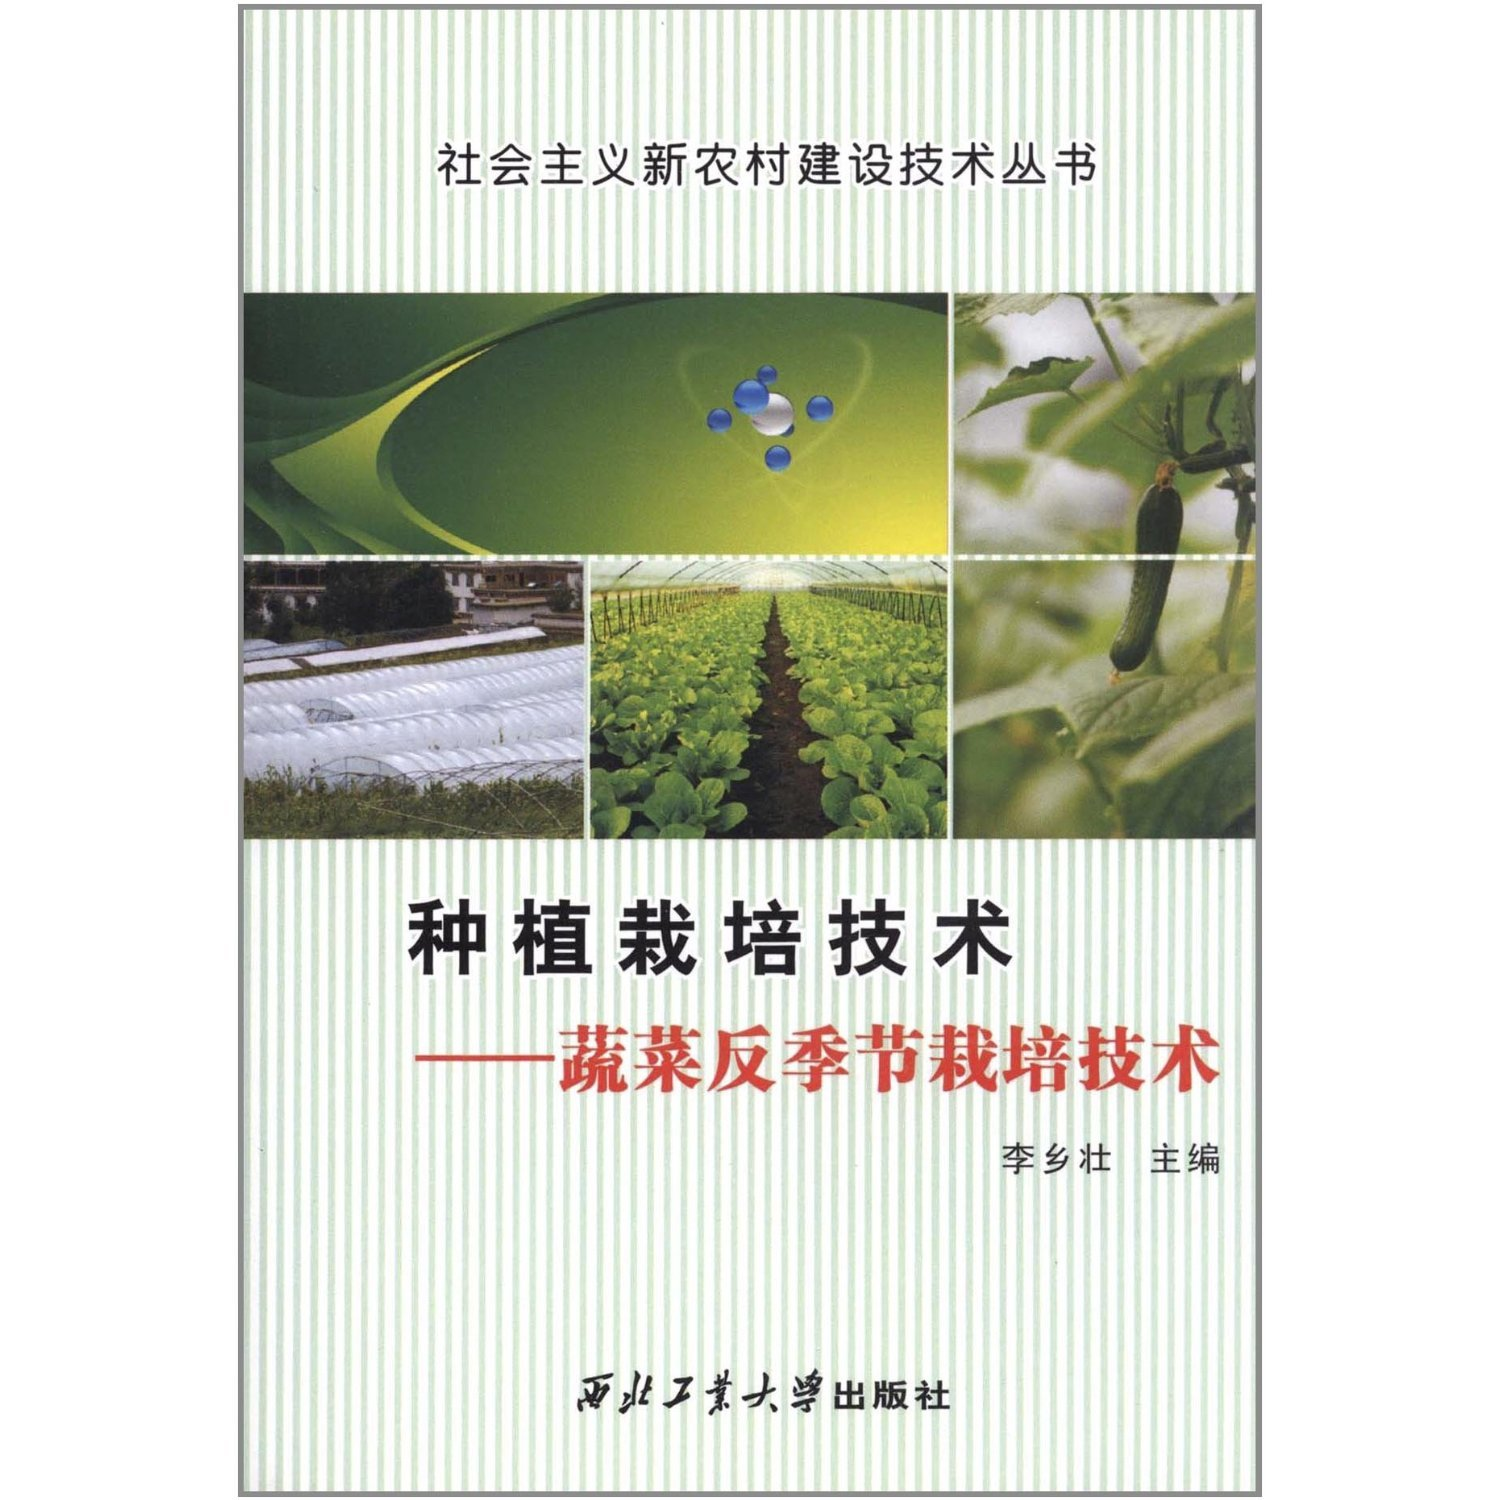 Planting and Cultivation Technique-3 Volumes In All (Chinese Edition) pdf